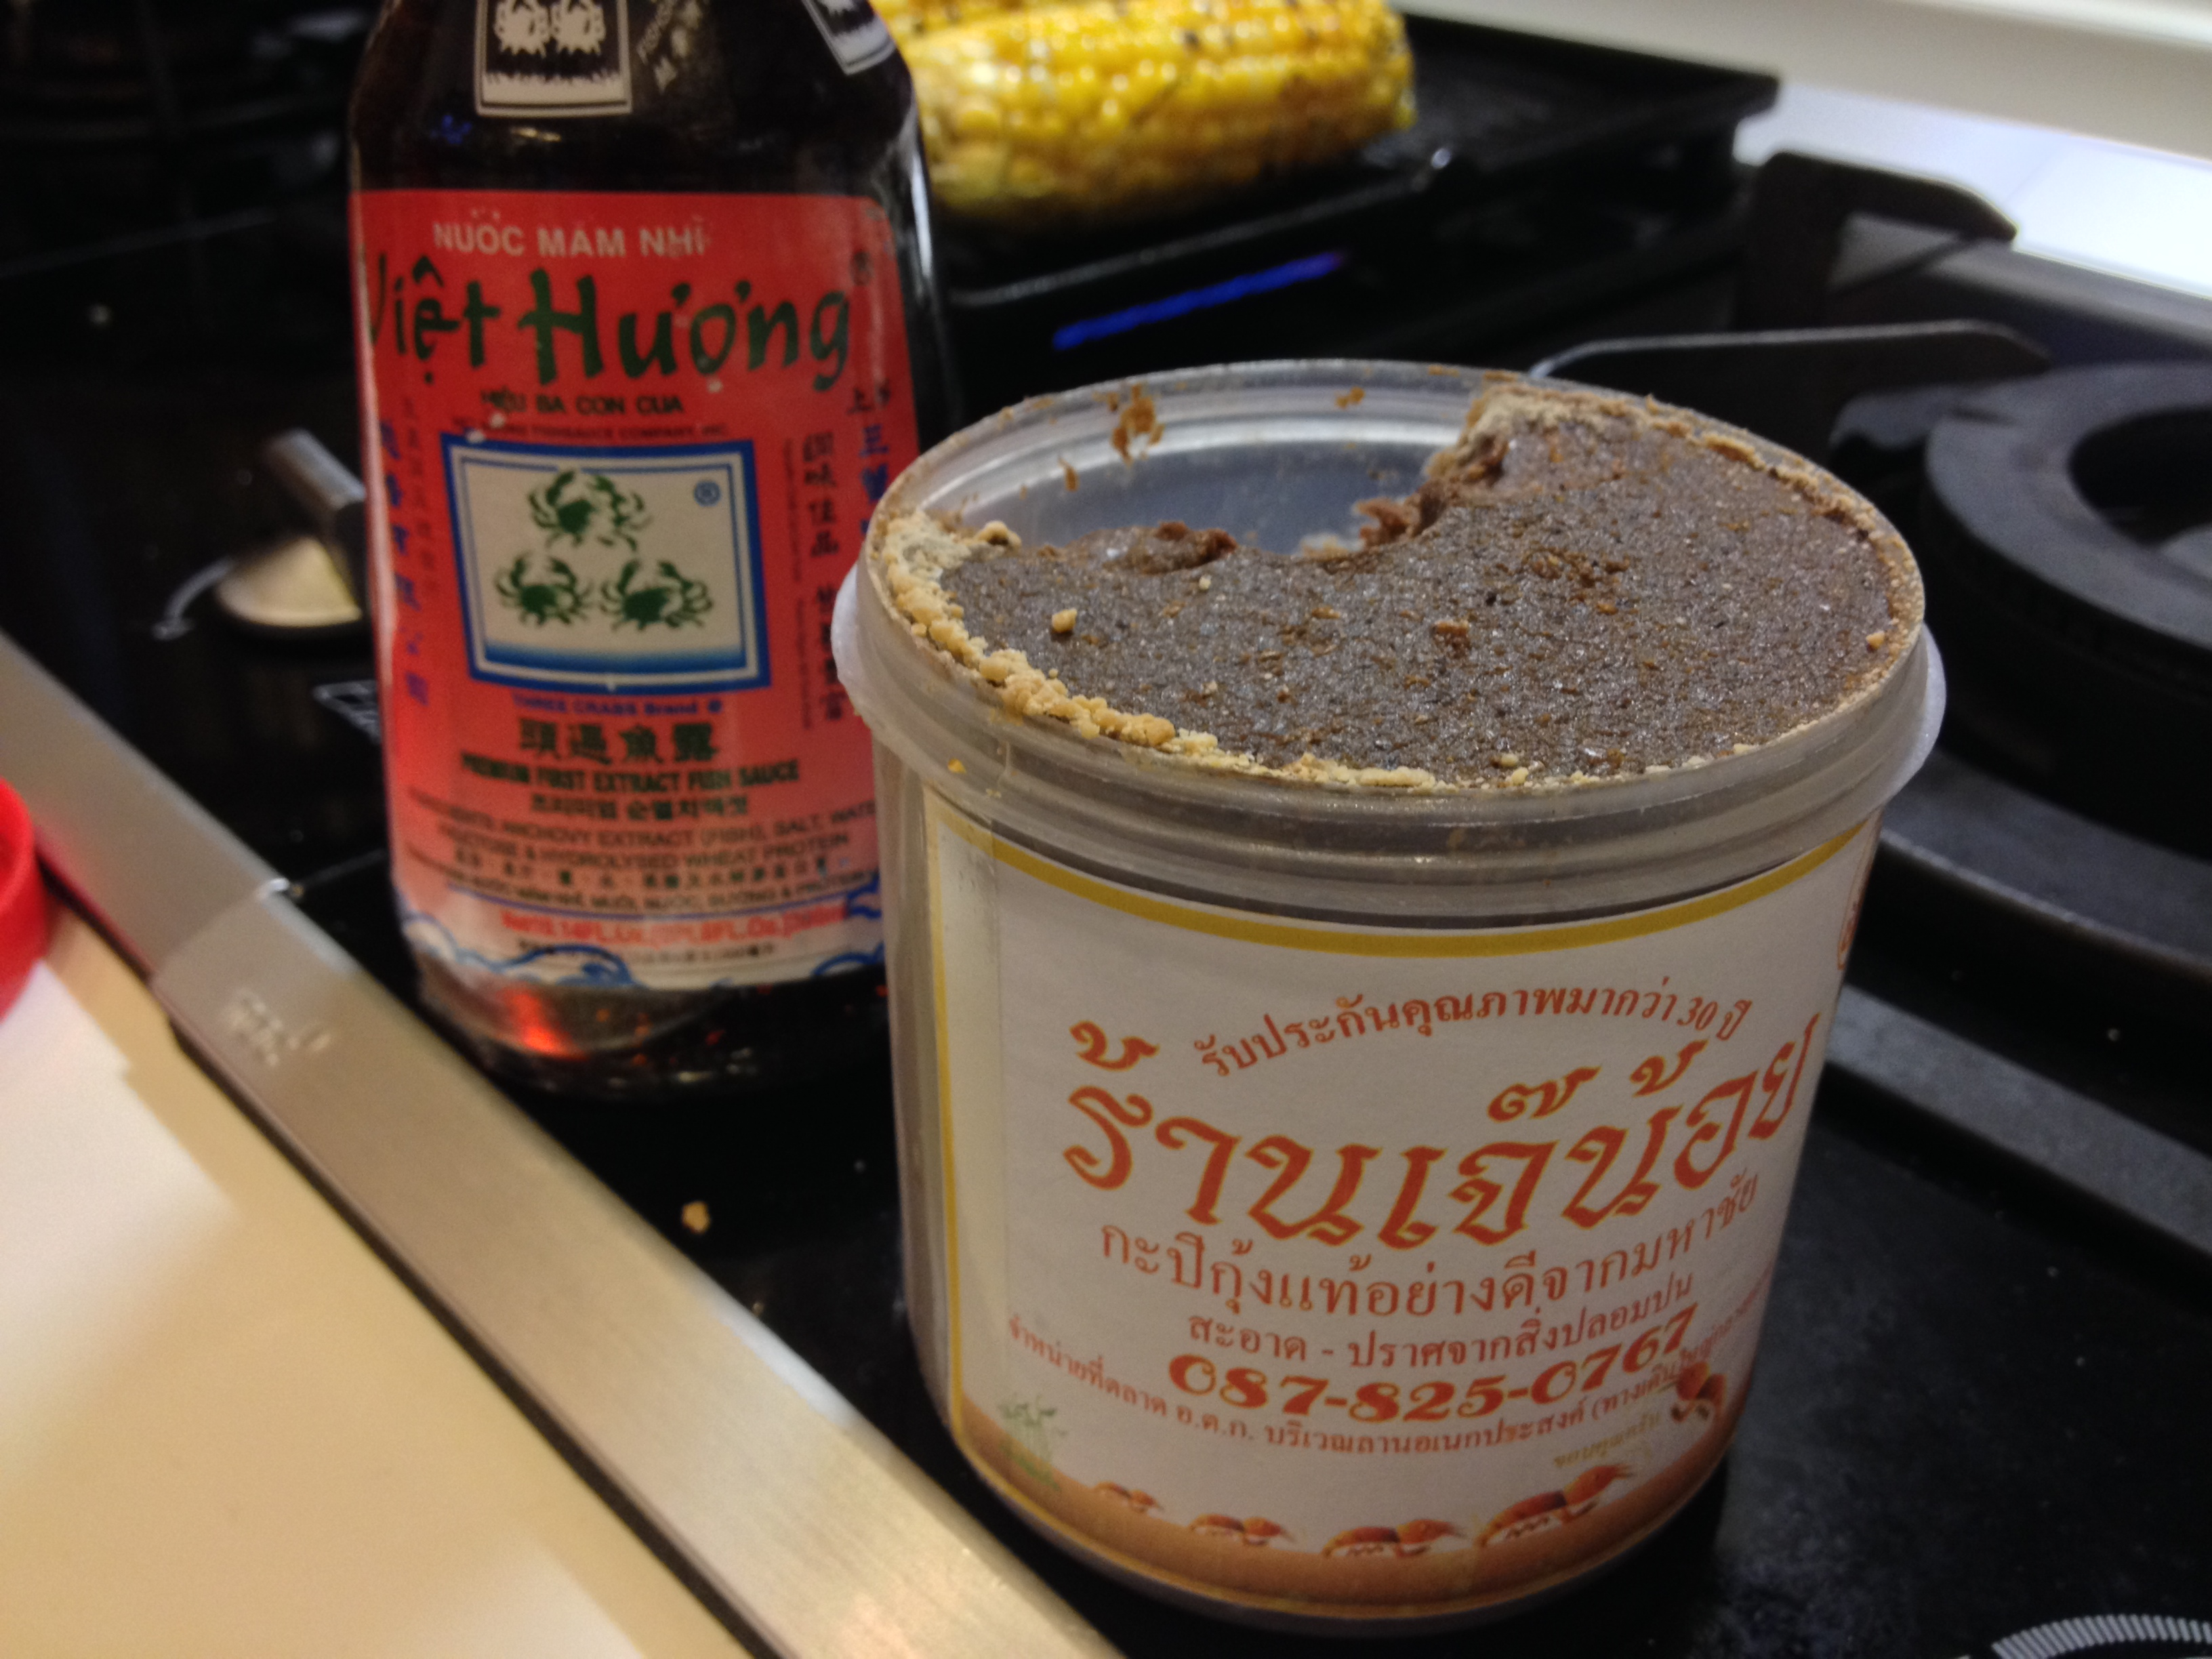 Shrimp paste seafood risotto homemade in hong kong for Vietnamese fish sauce